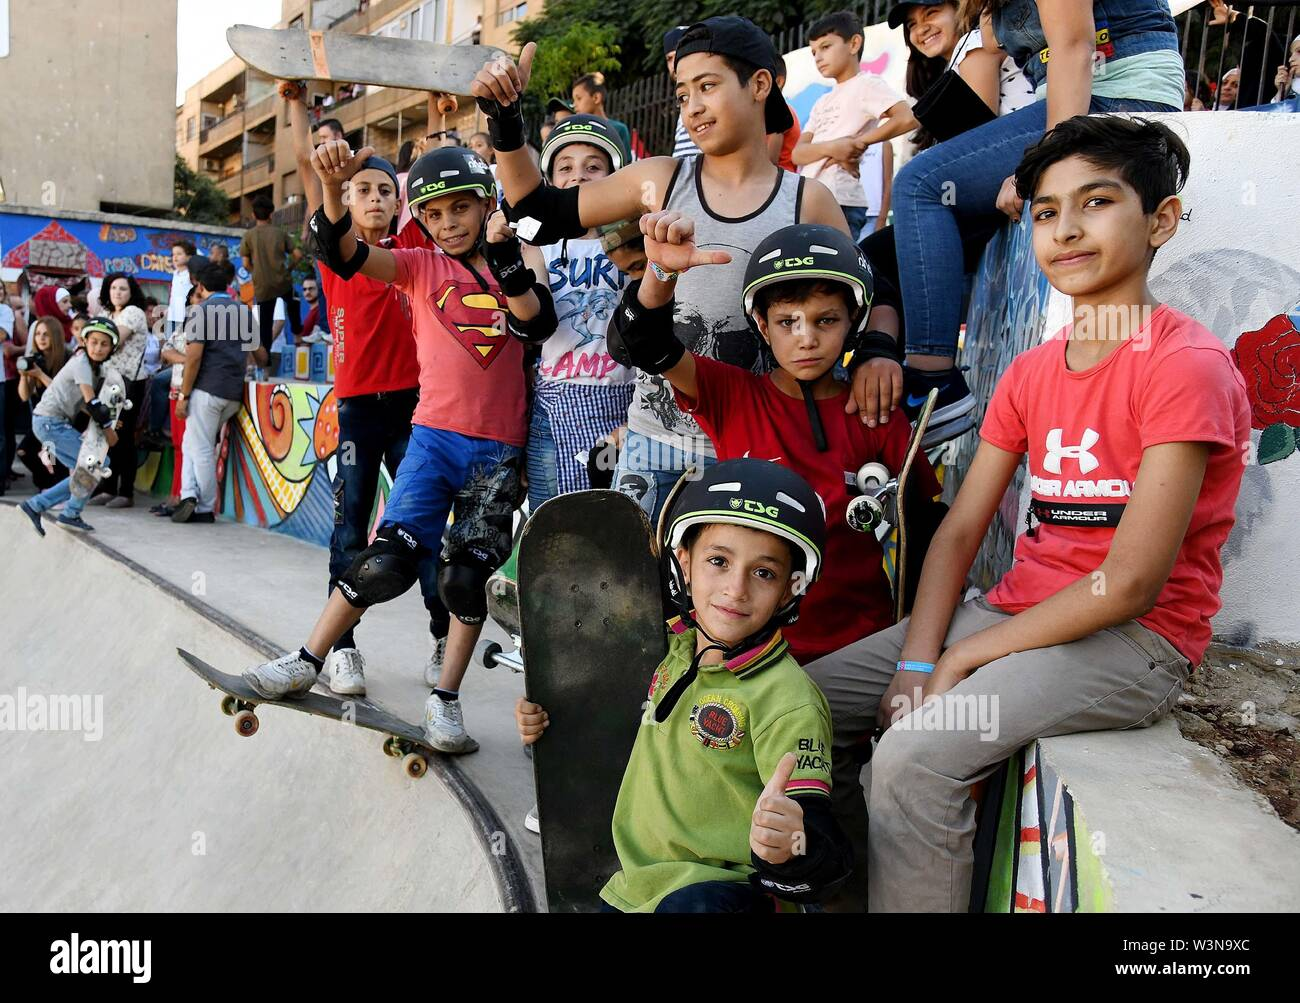 """(190717) -- DAMASCUS, July 17, 2019 (Xinhua) -- Children pose for photos during the opening of the first skatepark in Damascus, Syria, July 15, 2019. The skatepark was co-built by SOS Children's Villages in Syria, the German Skate Aid Foundation and Wonders Around the World, an international and independent non-profit organization. The park, which was officially opened on Monday, was completed in 26 days in an abandoned space close to a residential area that witnessed some acts of rebellion in the early years of the eight-year war in Syria. TO GO WITH """"Feature: First skatepark adds new dimensi Stock Photo"""